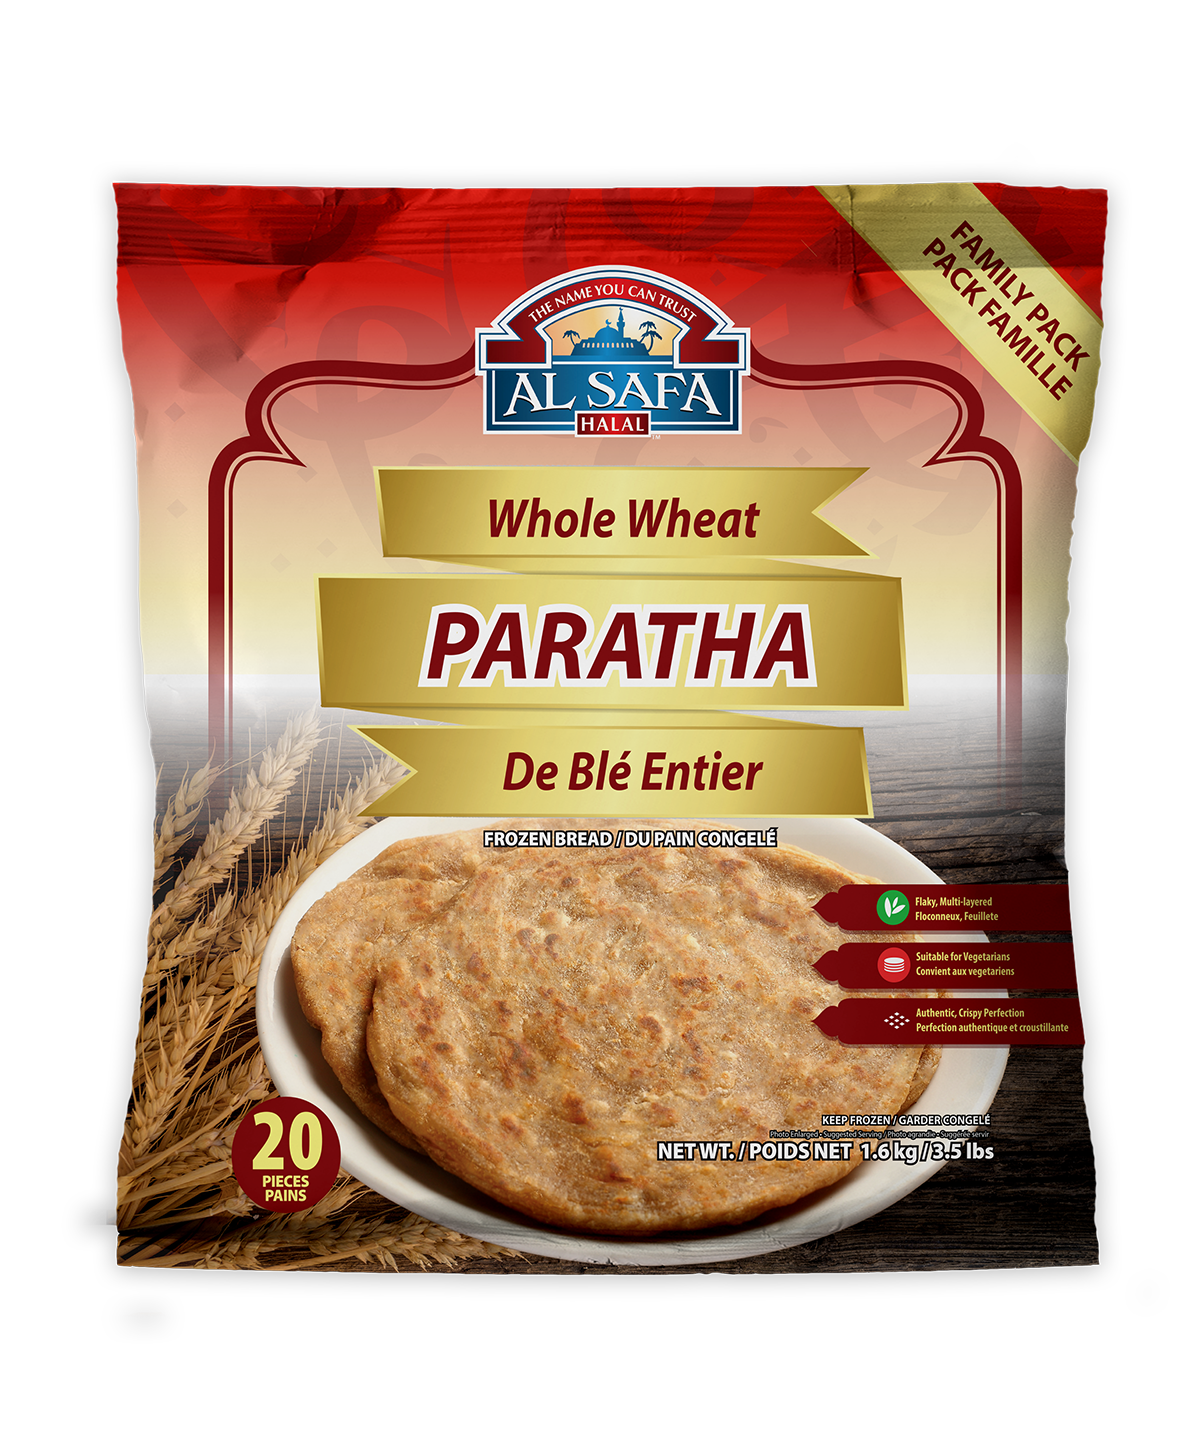 Al Safa Flatbread - Whole Wheat Paratha